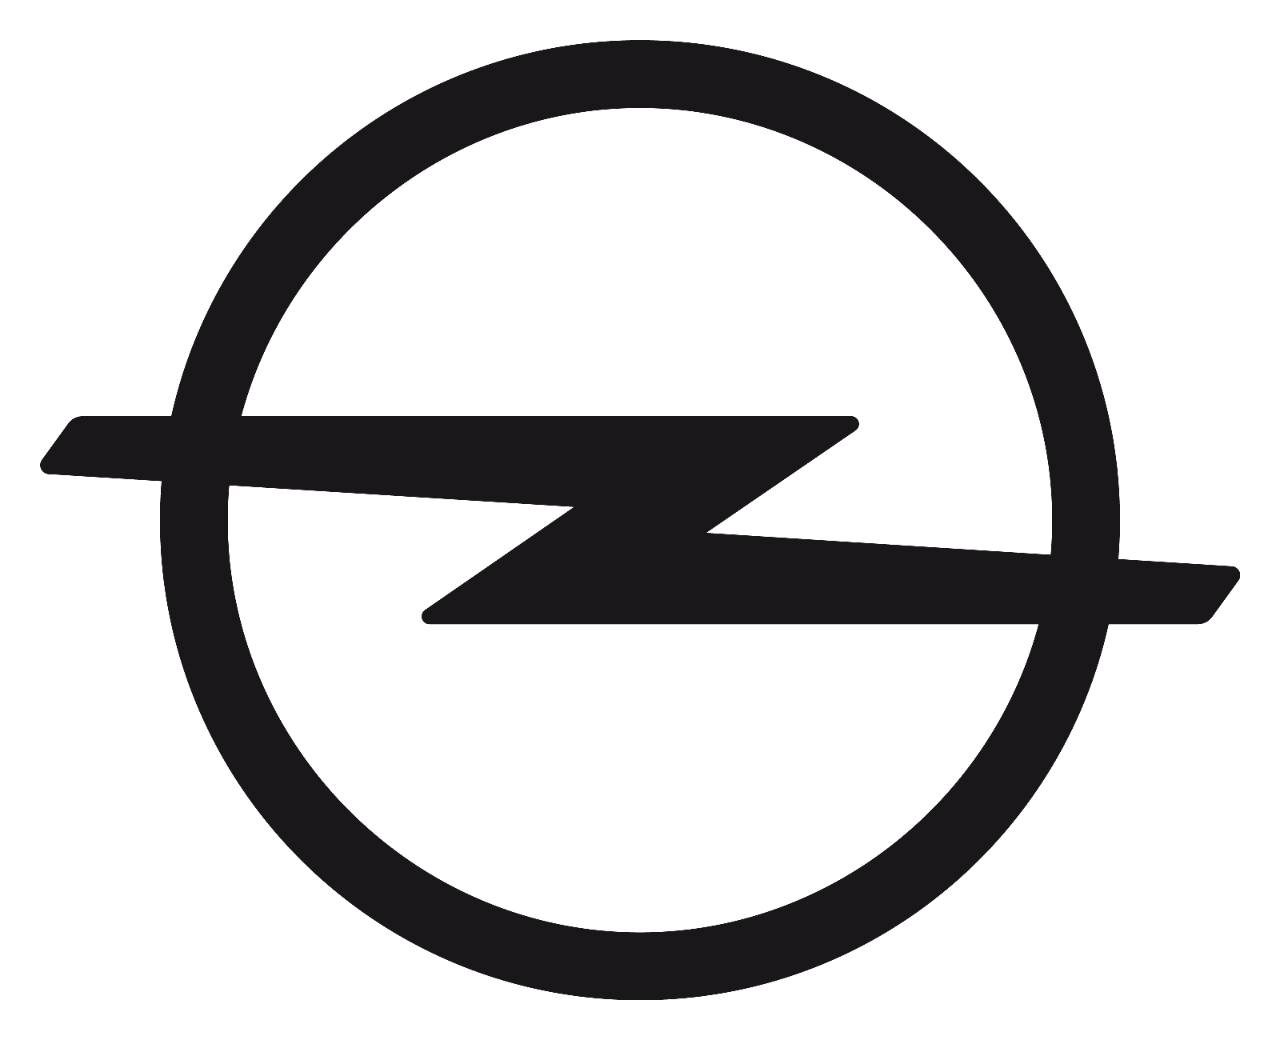 New Chevy Suv >> File:Opel-Logo 2017.png - Wikimedia Commons